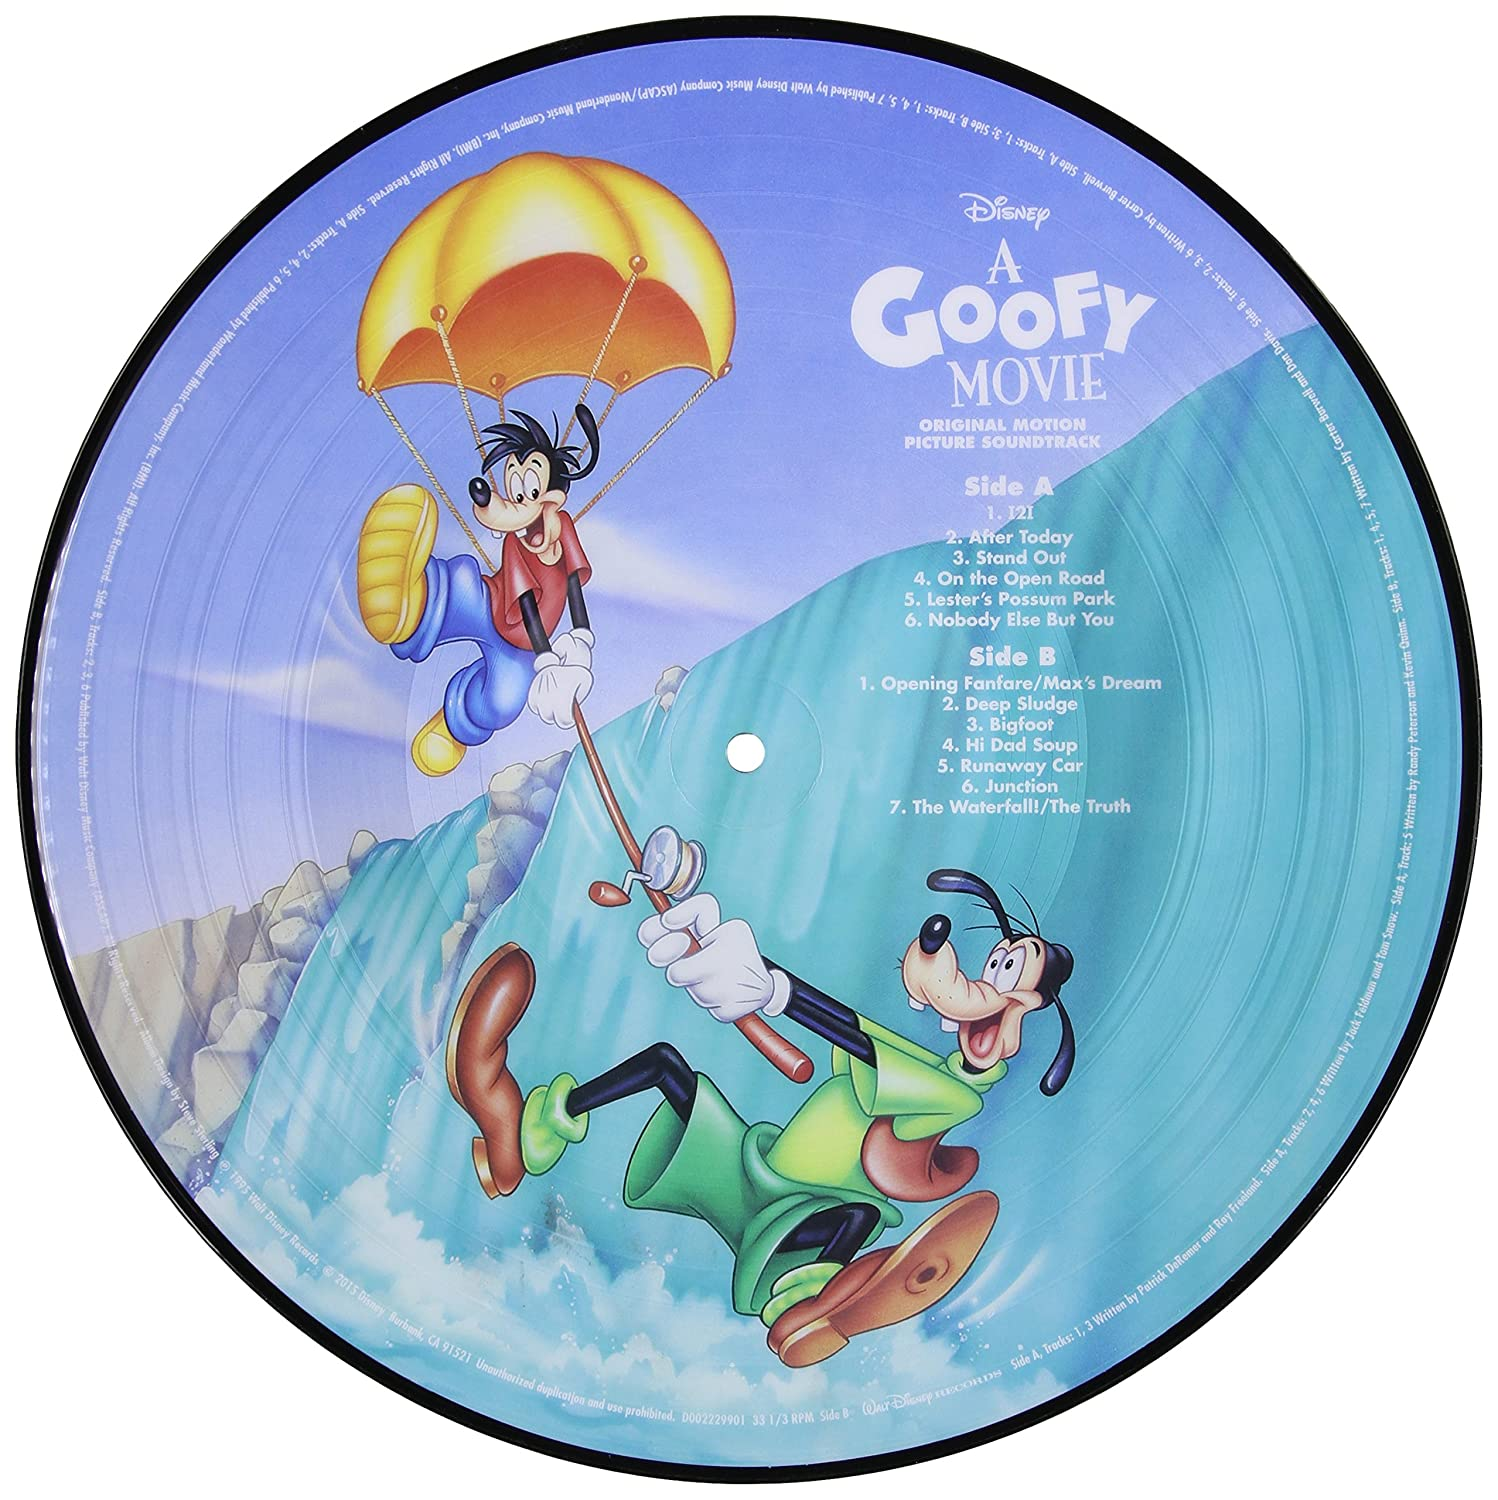 GOOFY MOVIE O.S.T. - A Goofy Movie - Amazon.com Music